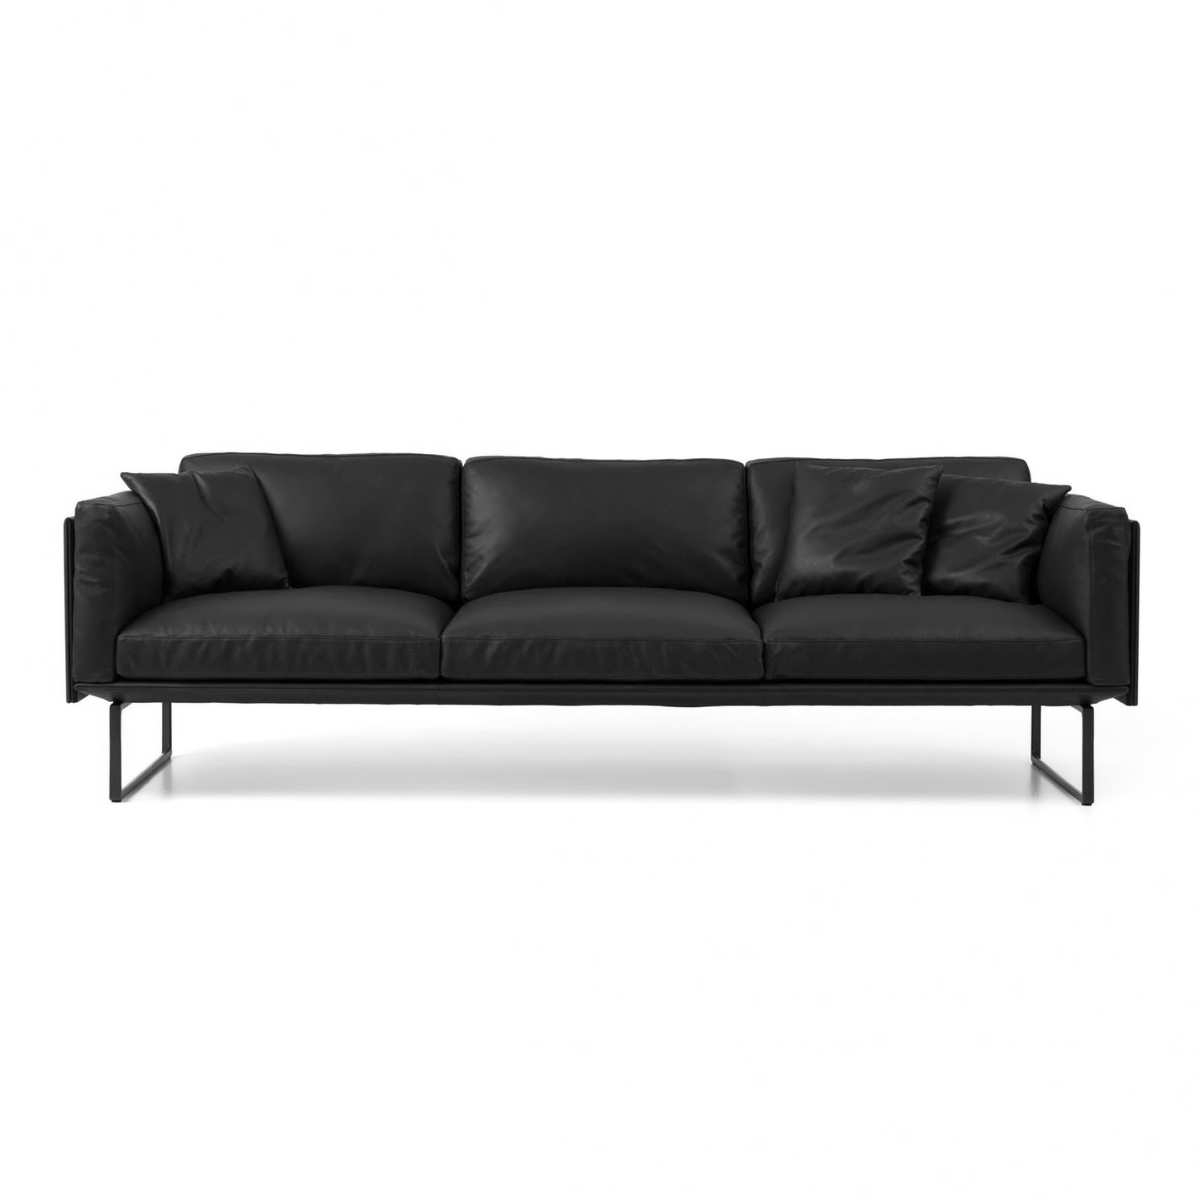 Well Known Sofa : Recliner Sofa Sofa Beds Sofa Bed Couch With Chaise Black Intended For Sofabeds With Chaise (View 15 of 15)